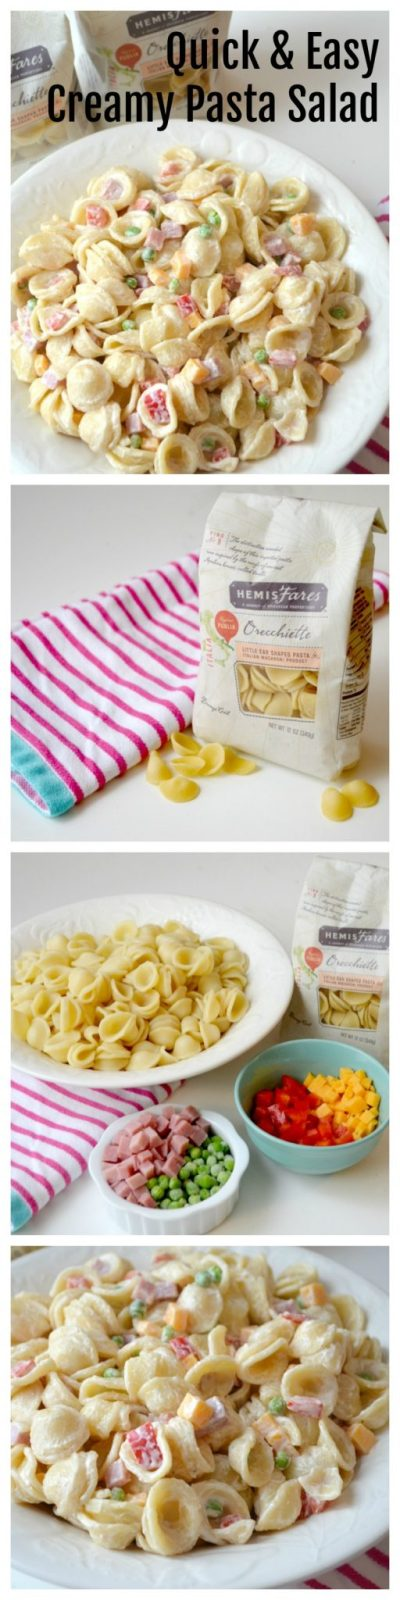 Quick & Easy Creamy Pasta Salad